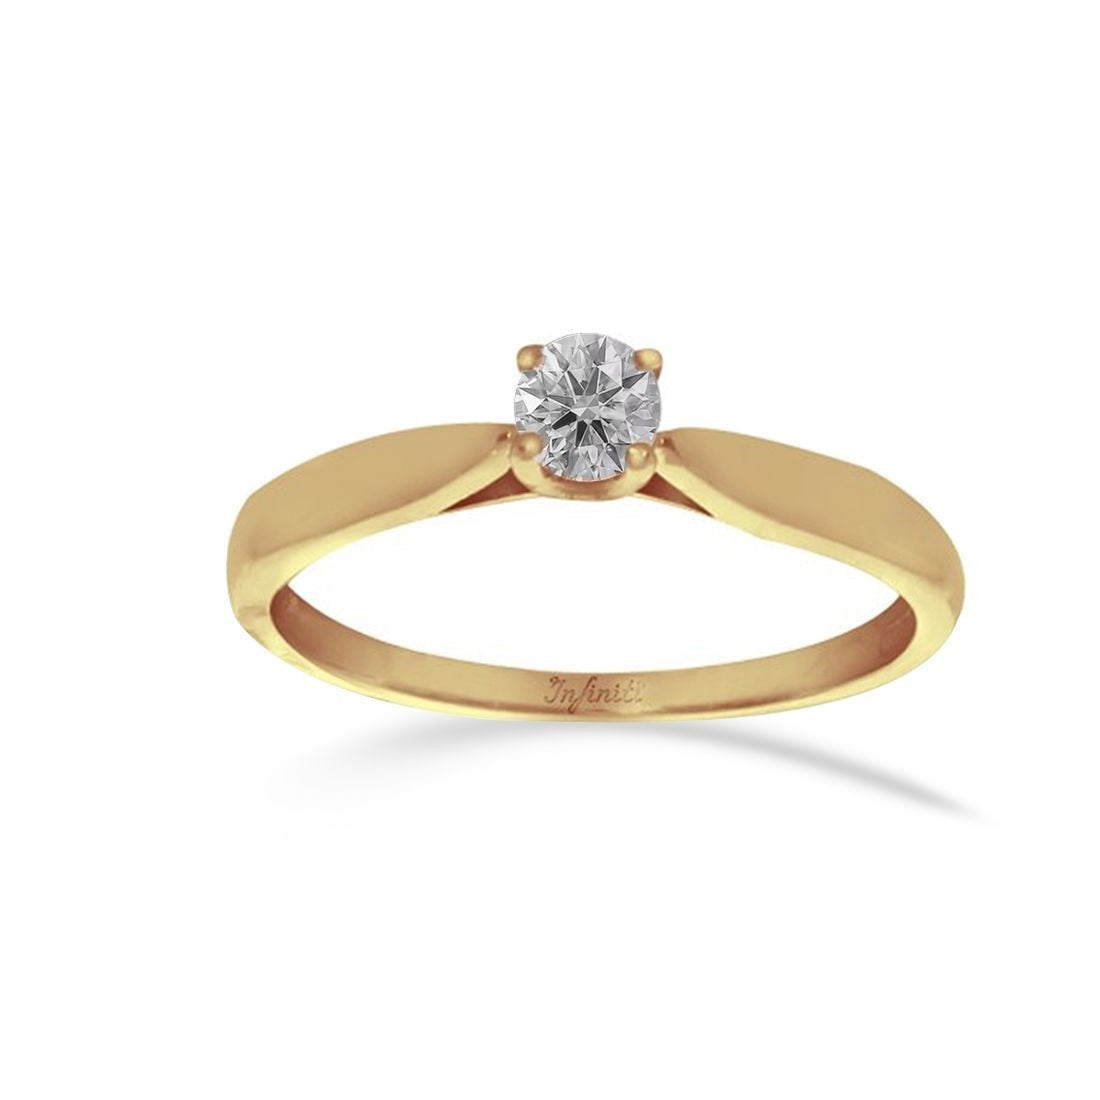 Anillo Oro 14k, Diamante Natural de 21 Puntos, Oro 14k